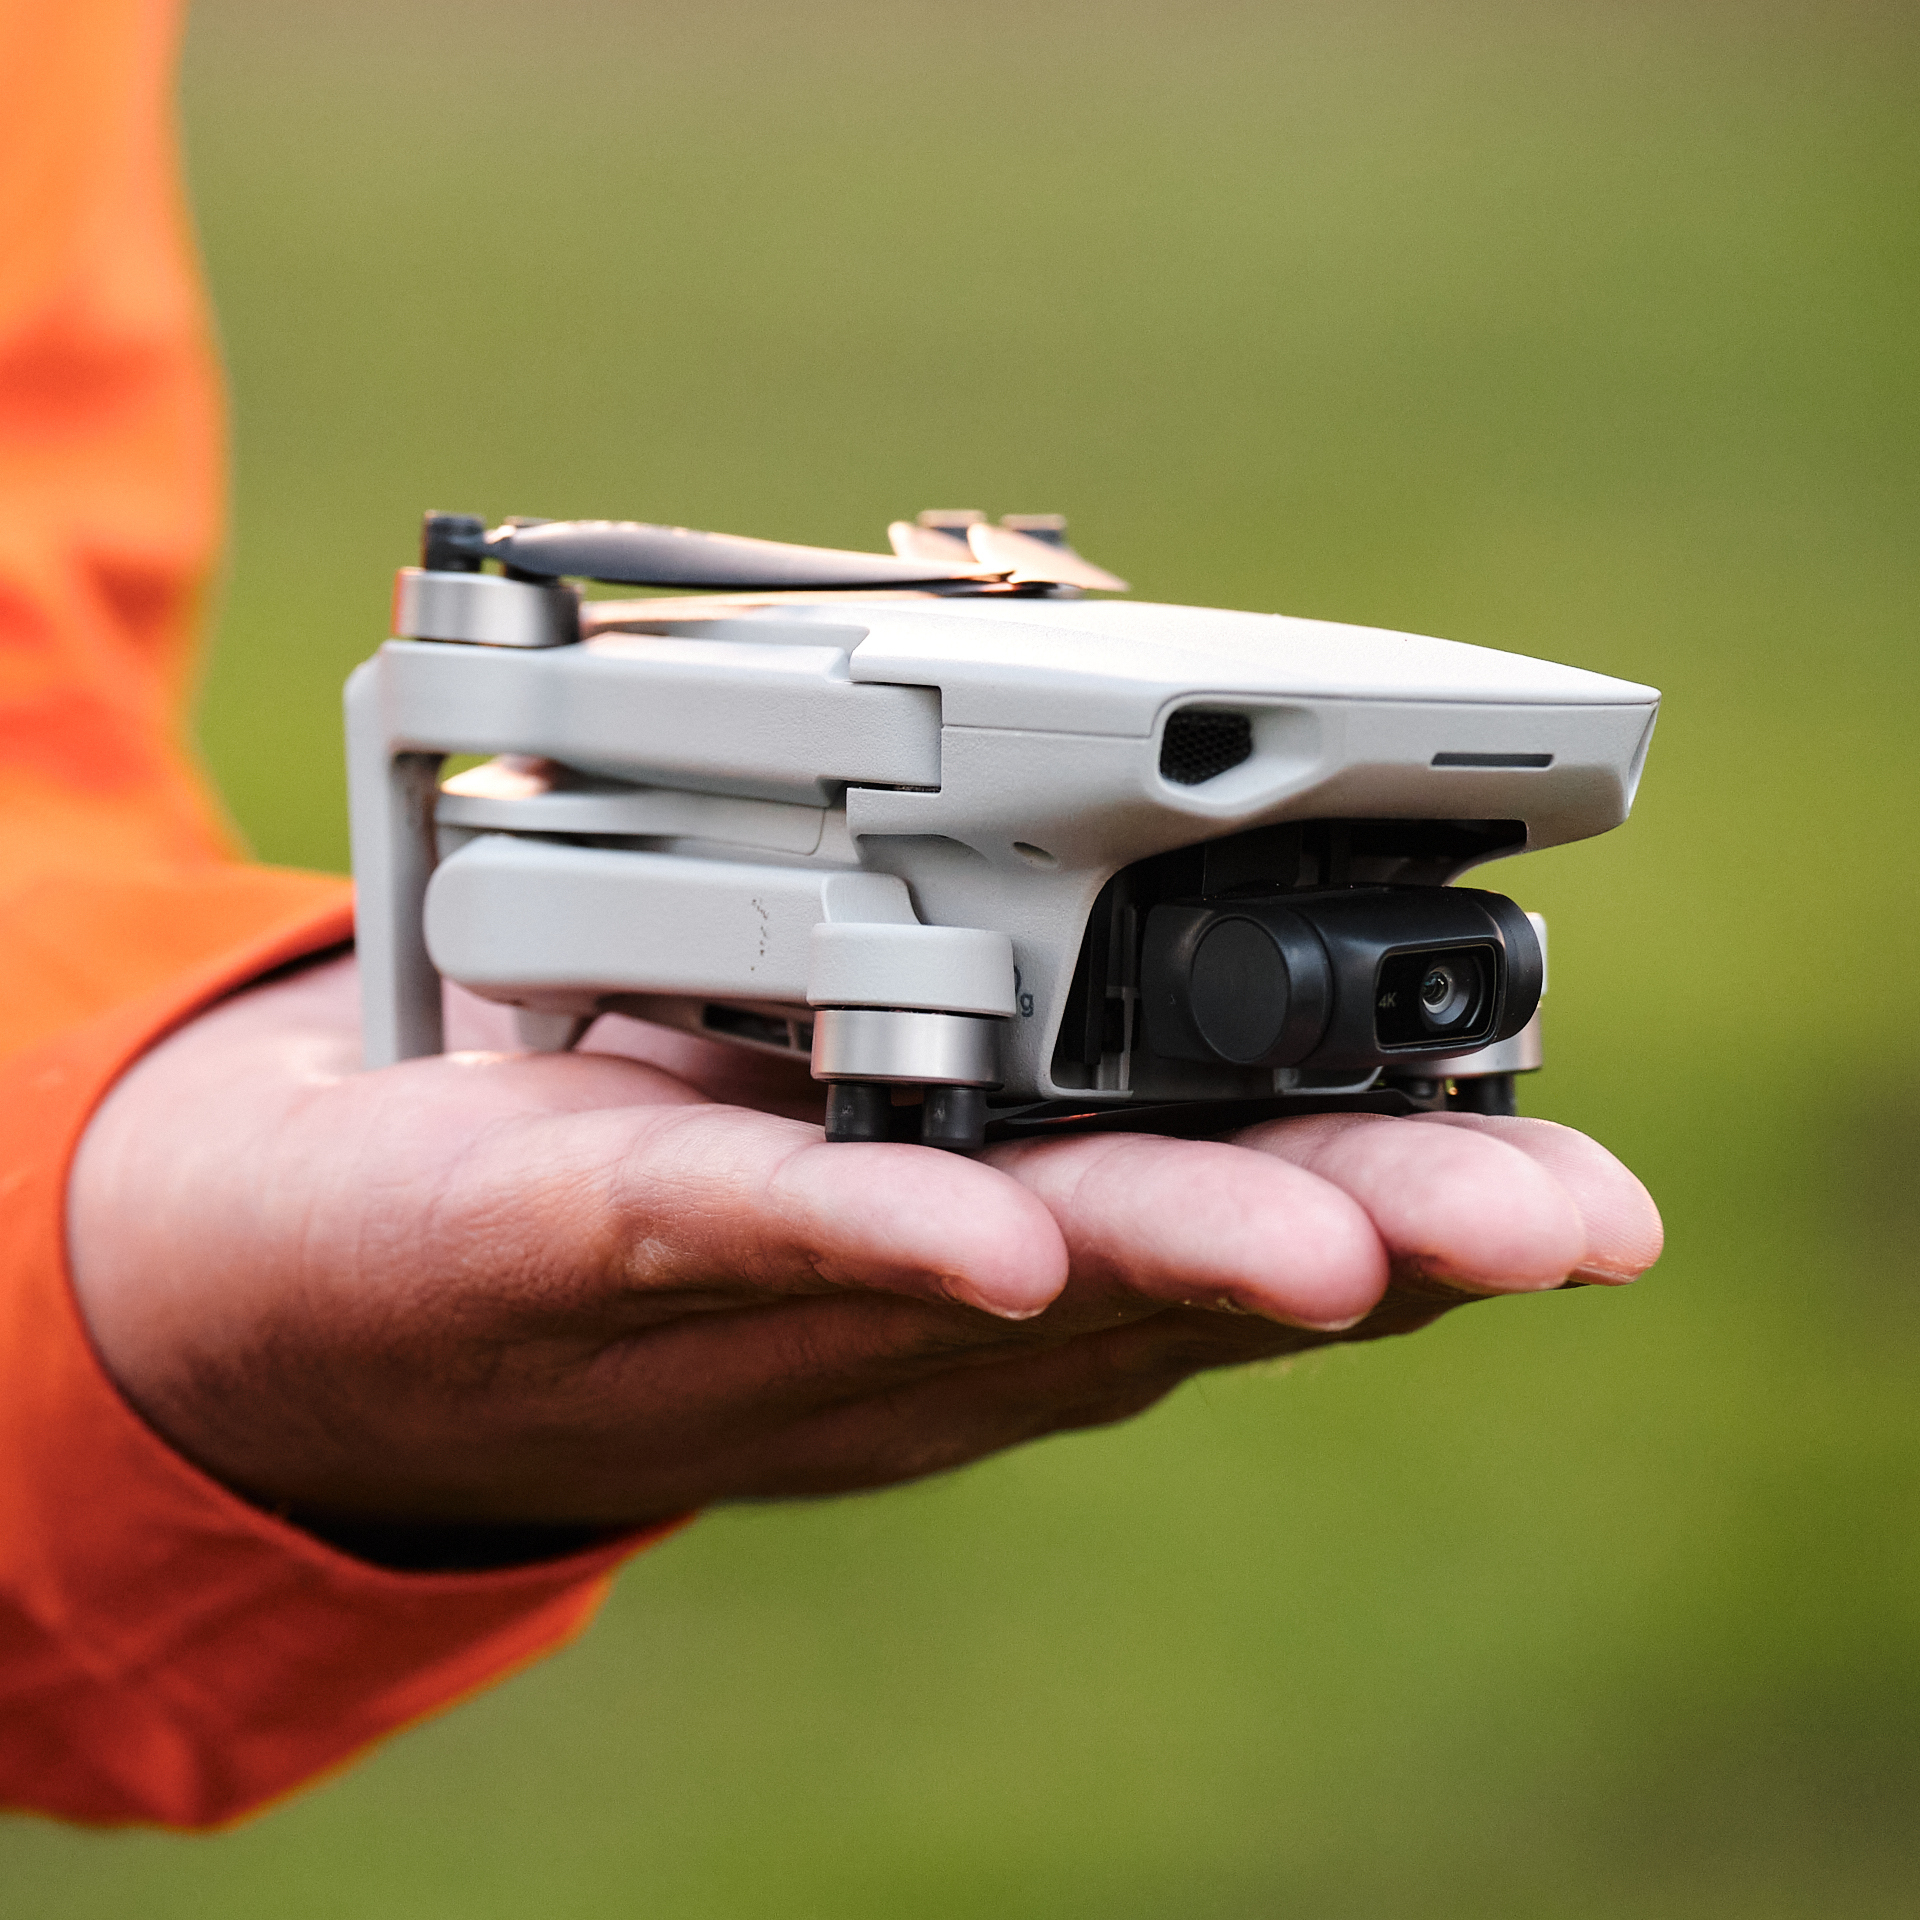 DJI Mini 2 review: the best drone under 0